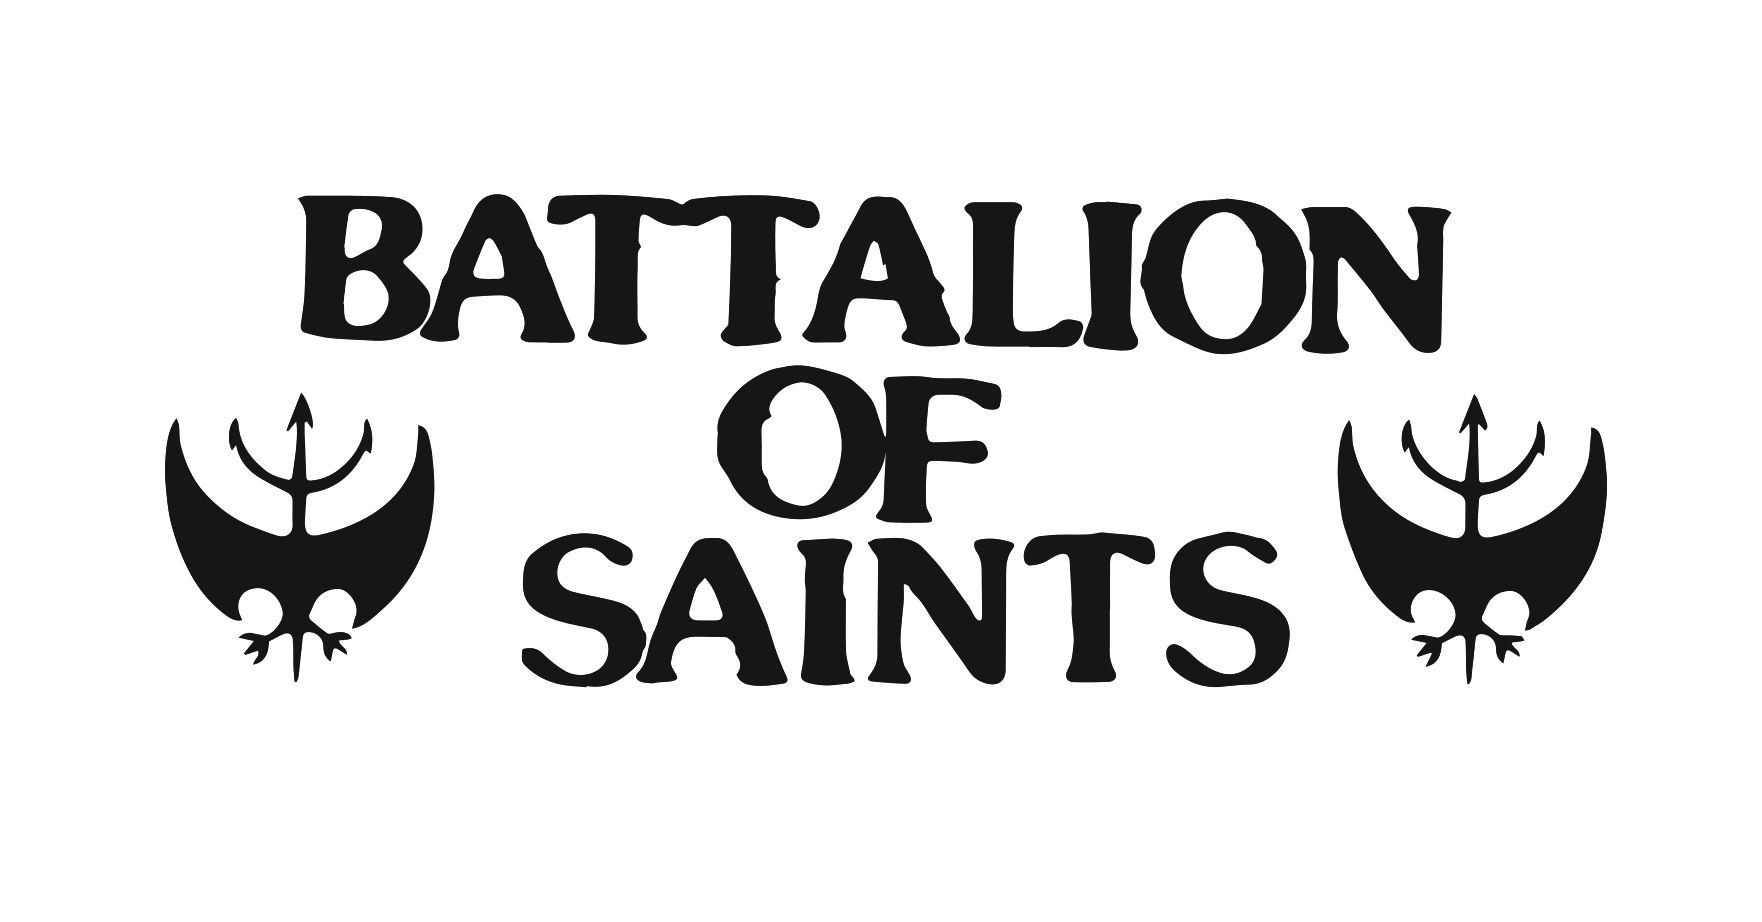 McMenamins Battalion of Saints